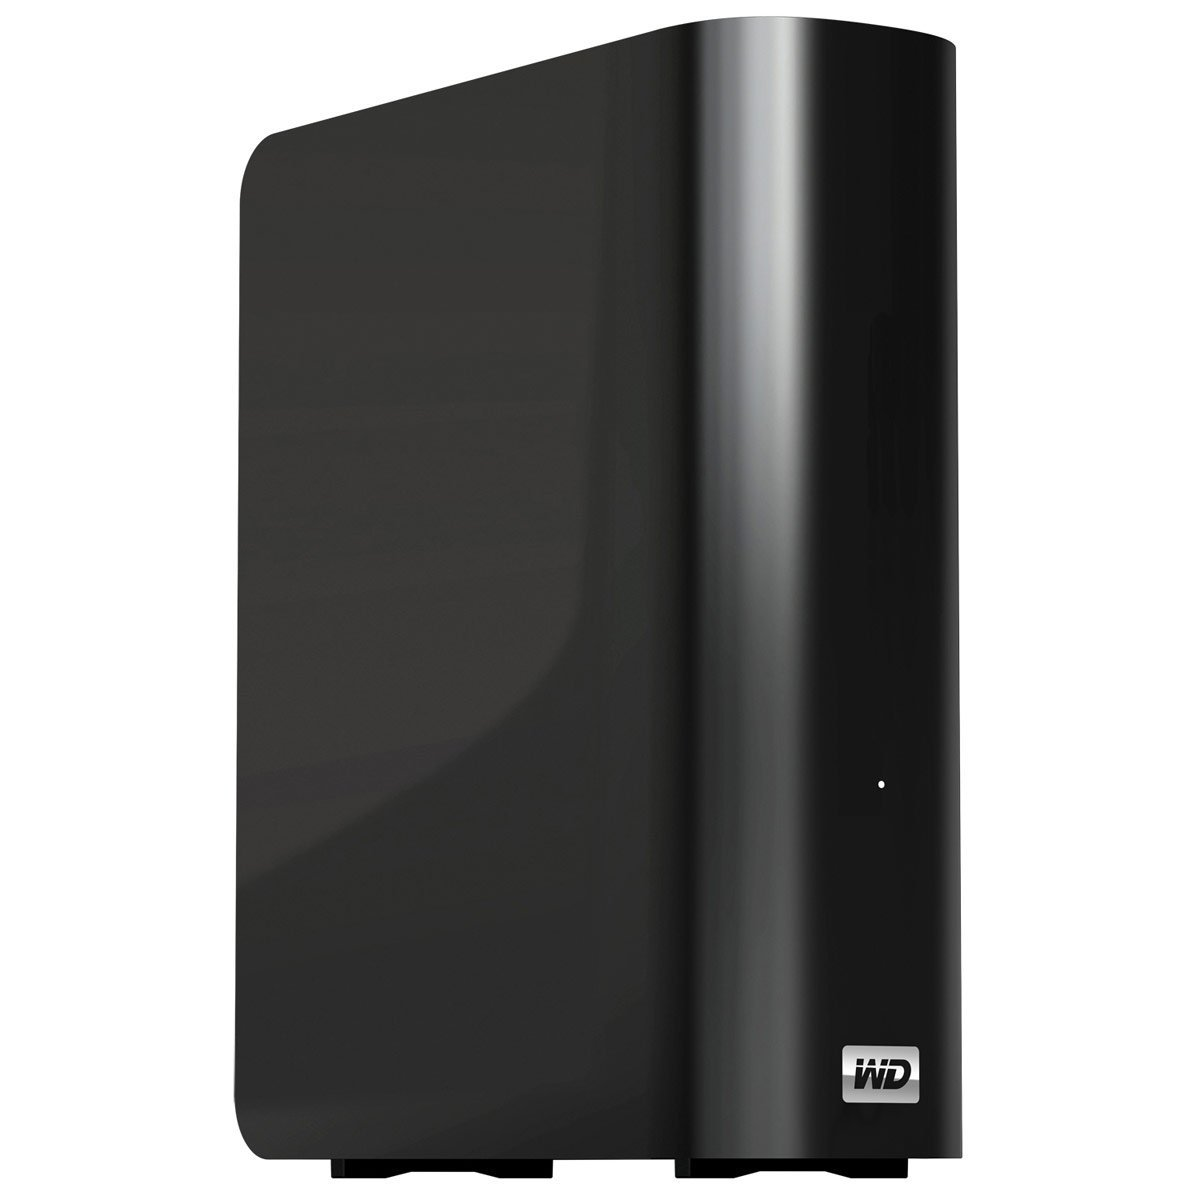 Hard Disk Esterni - WD My Book 2TB USB 3.0